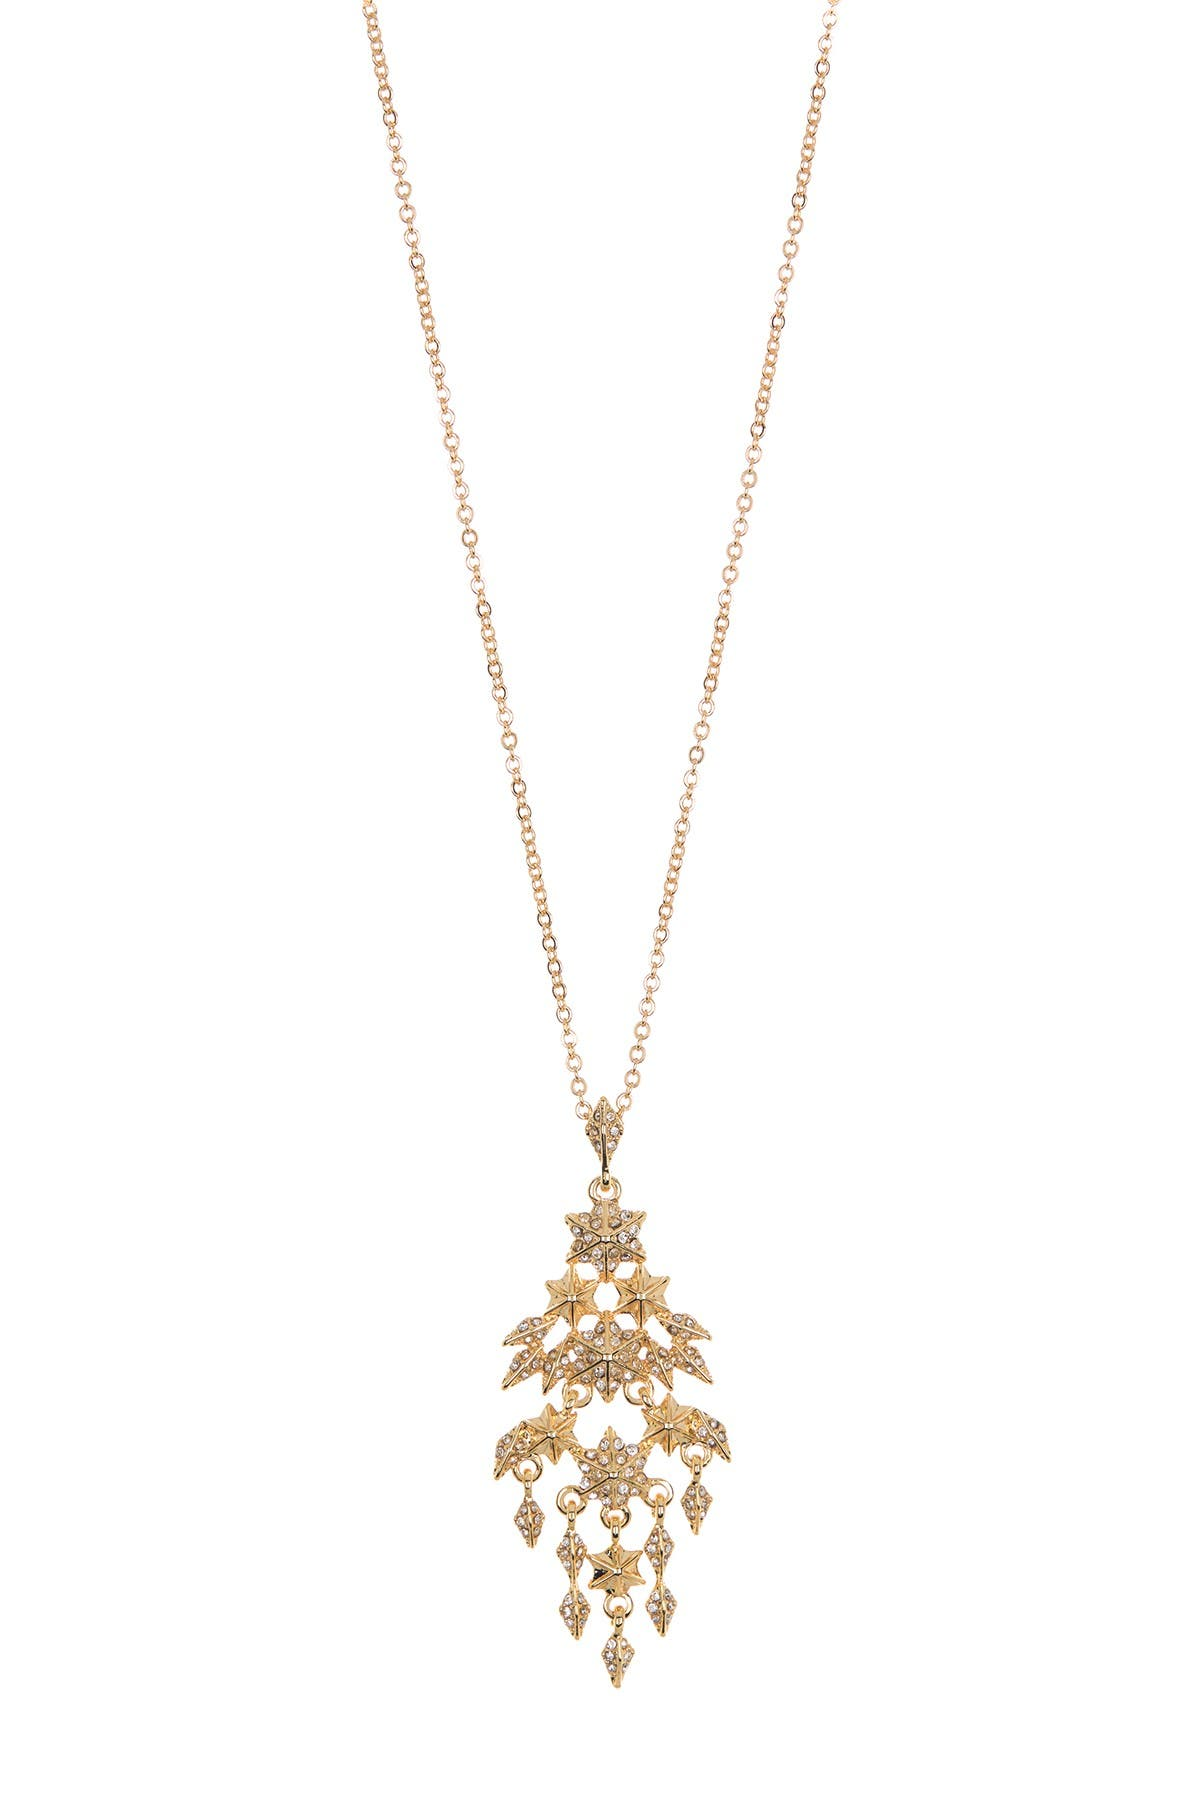 Image of Vince Camuto Drama Necklace